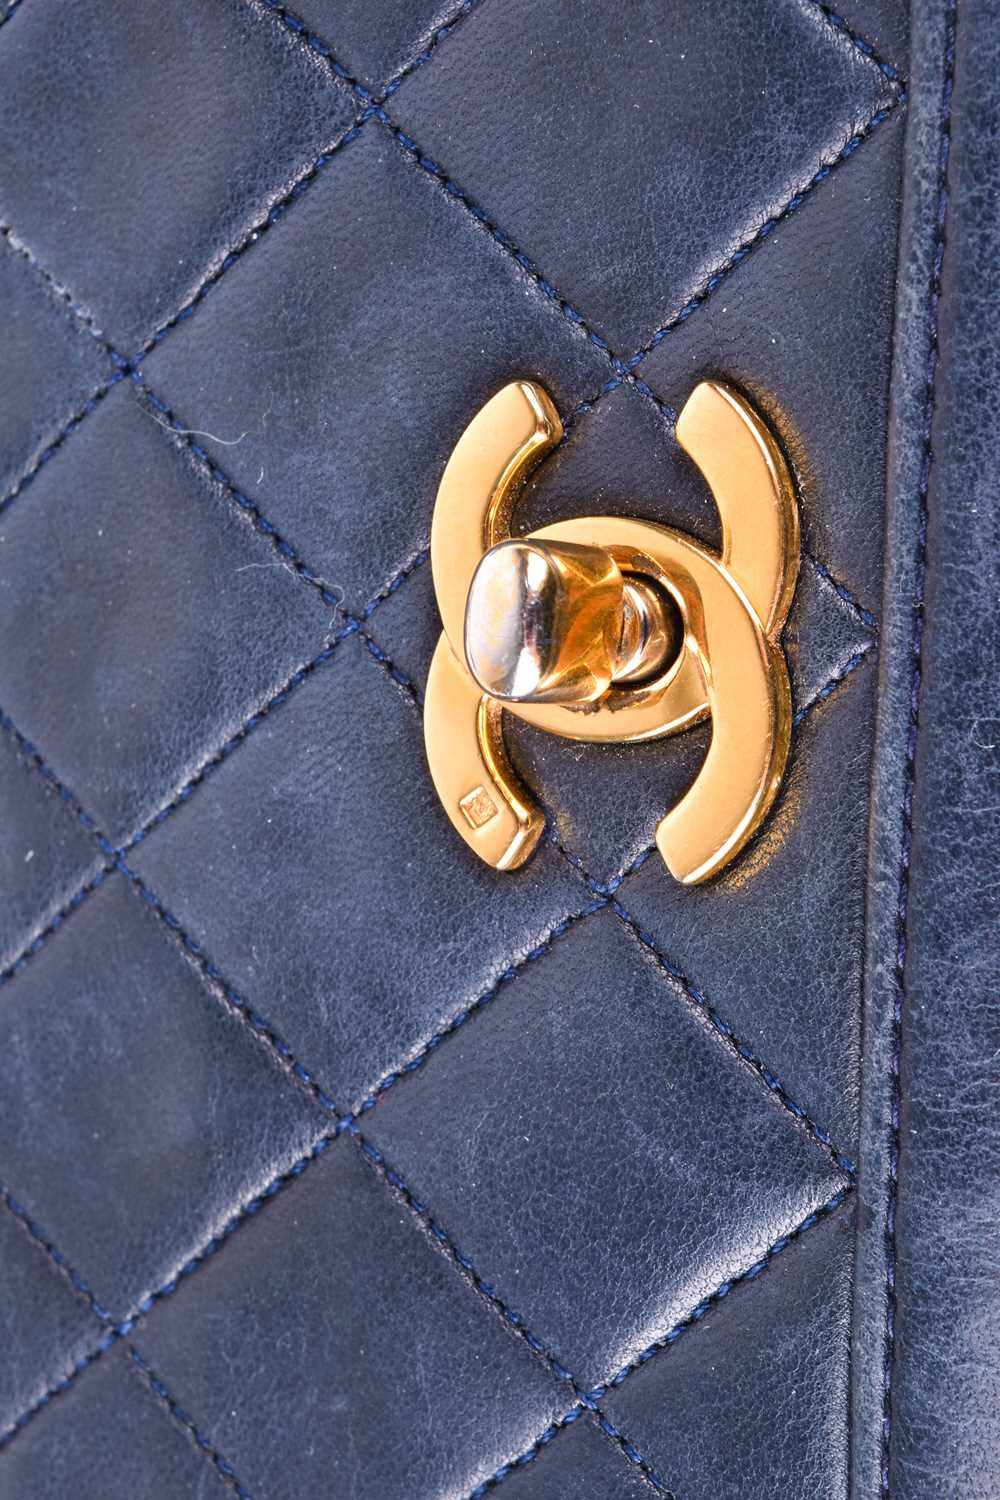 Chanel. A classic quilted leather handbag, of tapered square design, with gold tone CC logo clasp, - Image 3 of 26